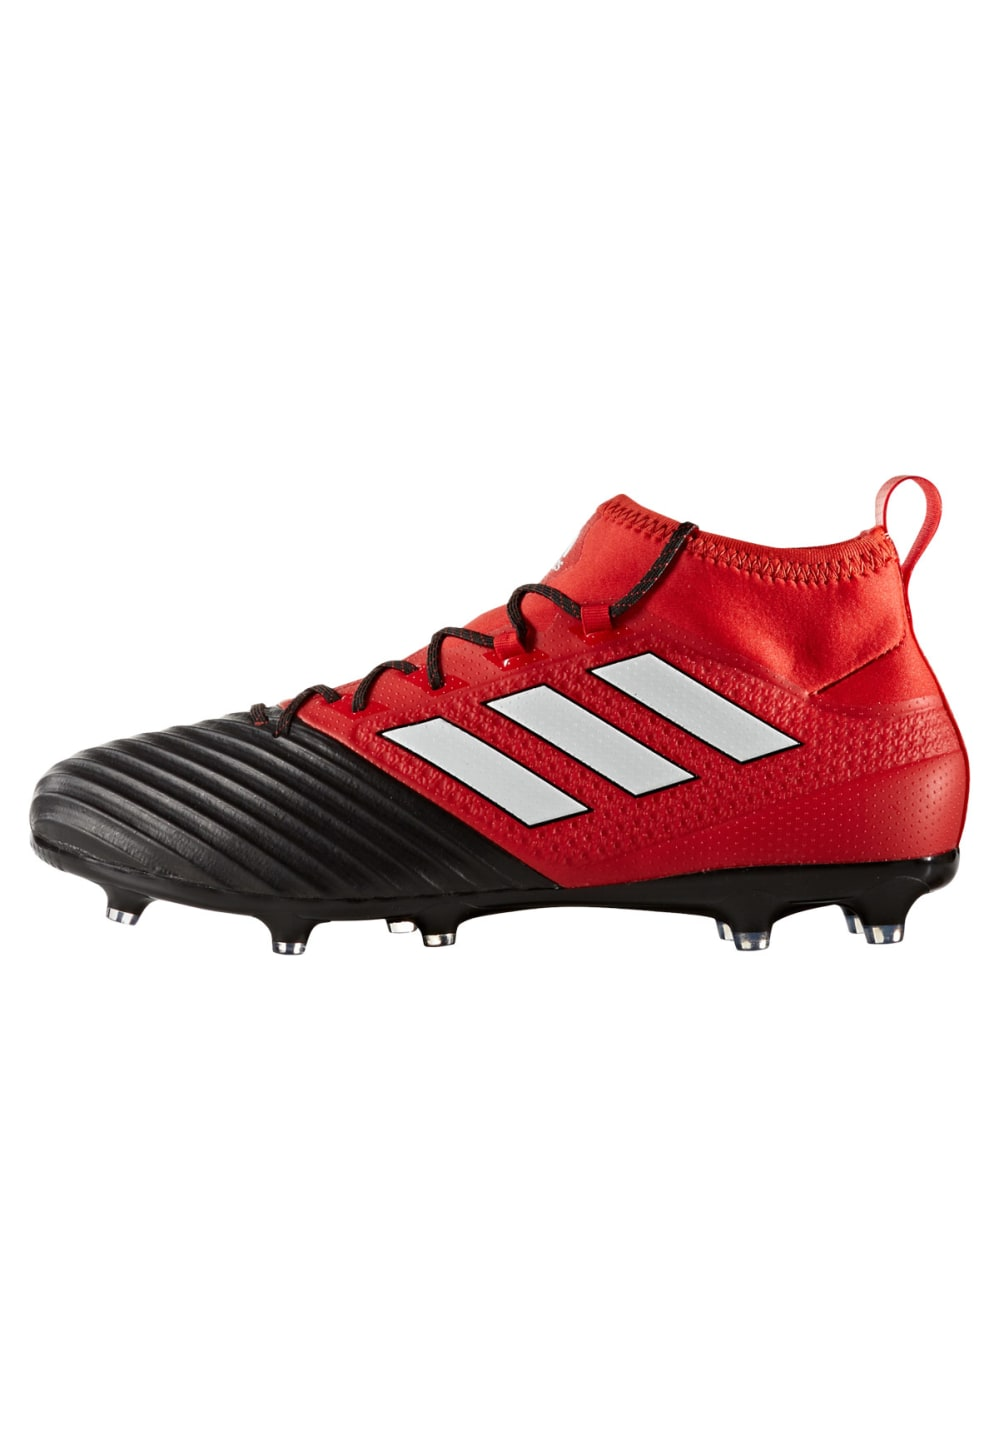 newest 30bb9 edfd4 adidas ACE 17.2 Primemesh FG - Football Shoes for Men - Red